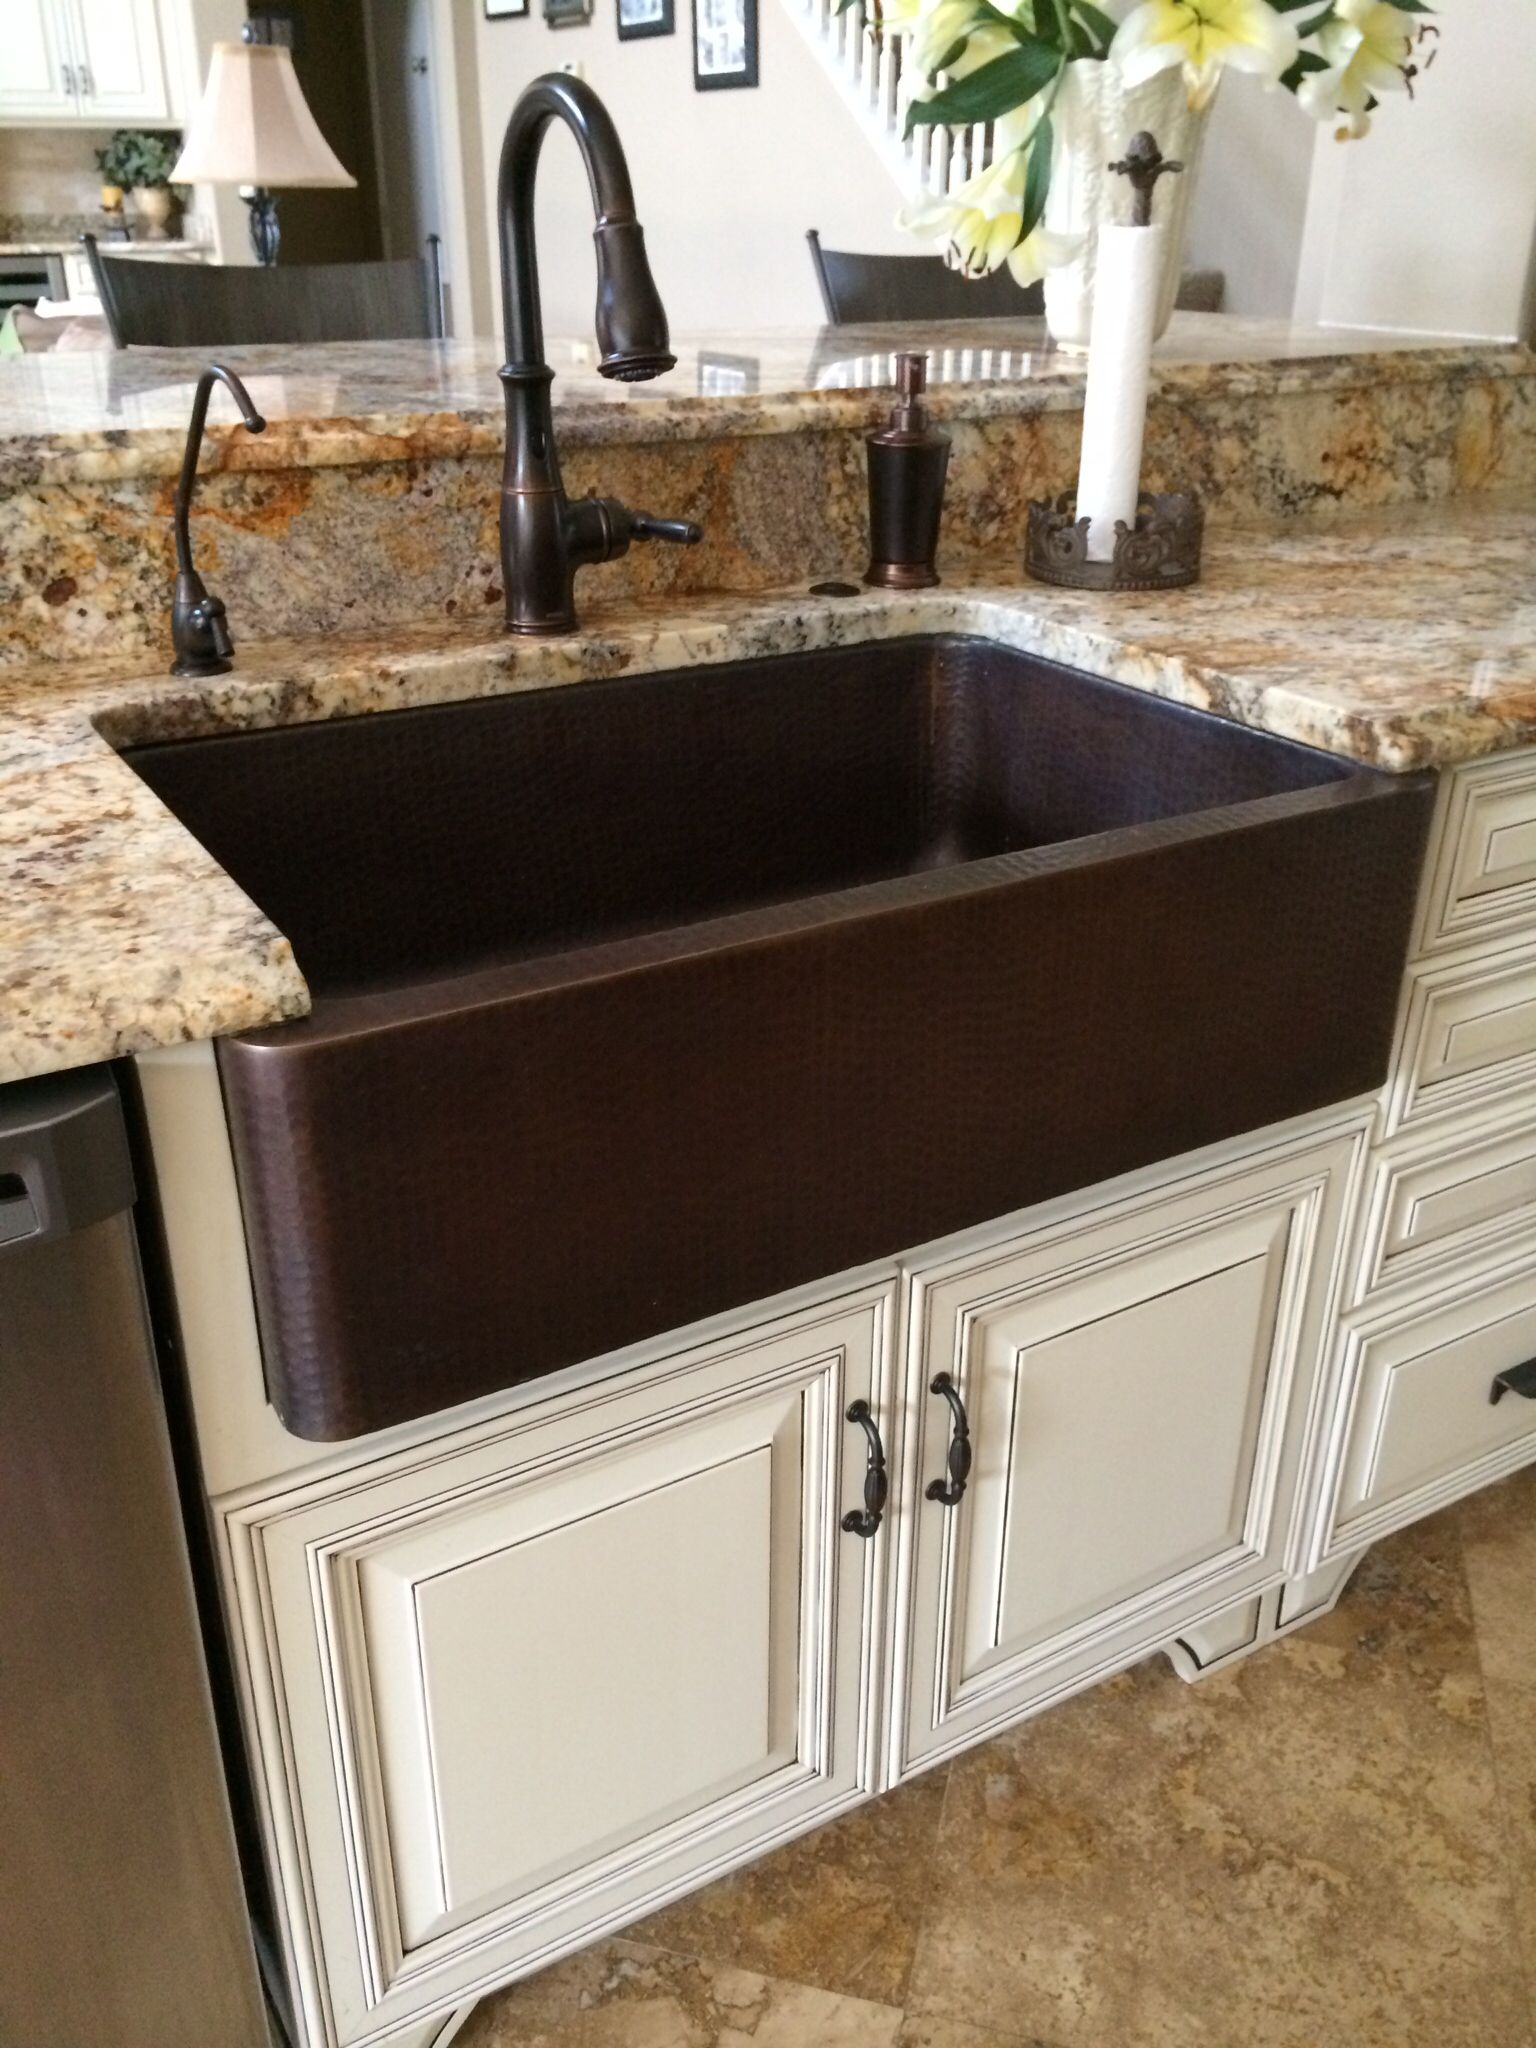 Hammered copper farm sink moen oil rubbed bronze touch